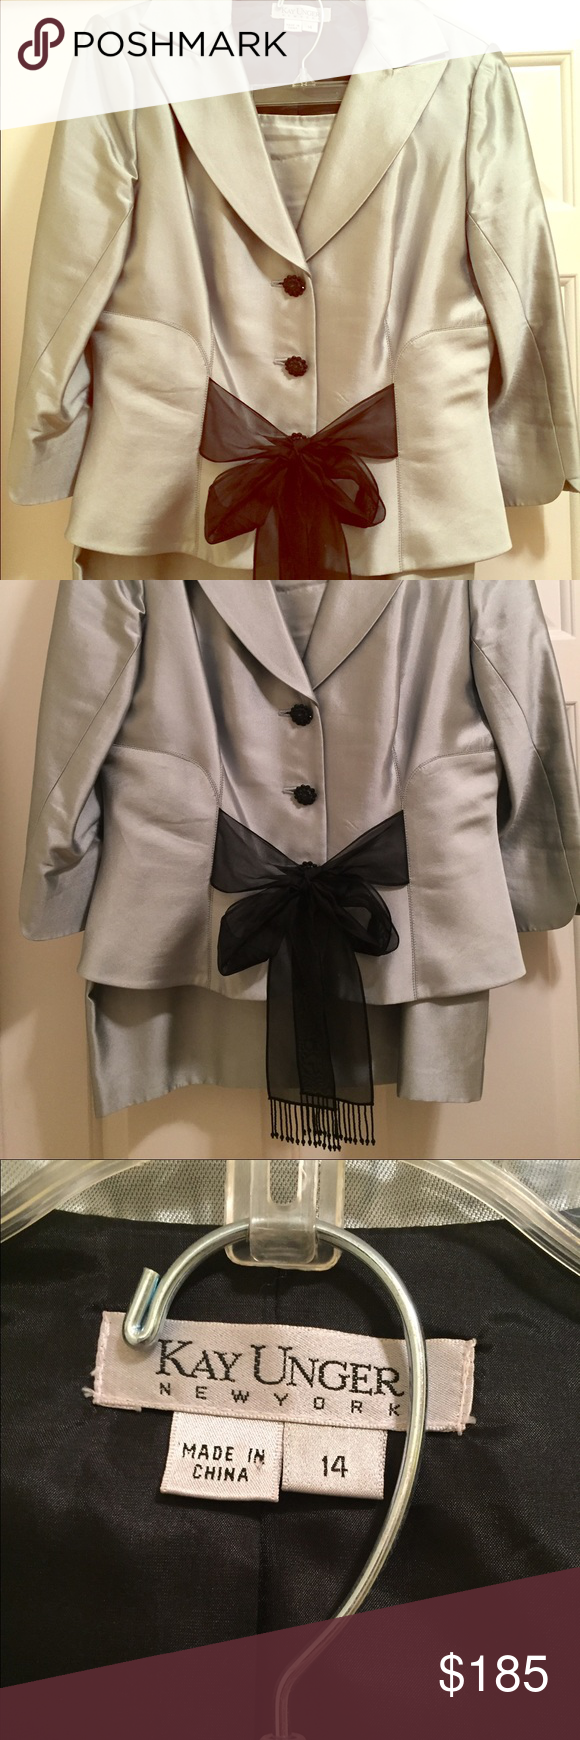 Kay Unger 2 piece suit, size 14 Stunning 2 piece suit. Worn once. Size 14. Comment for inquiries Dresses